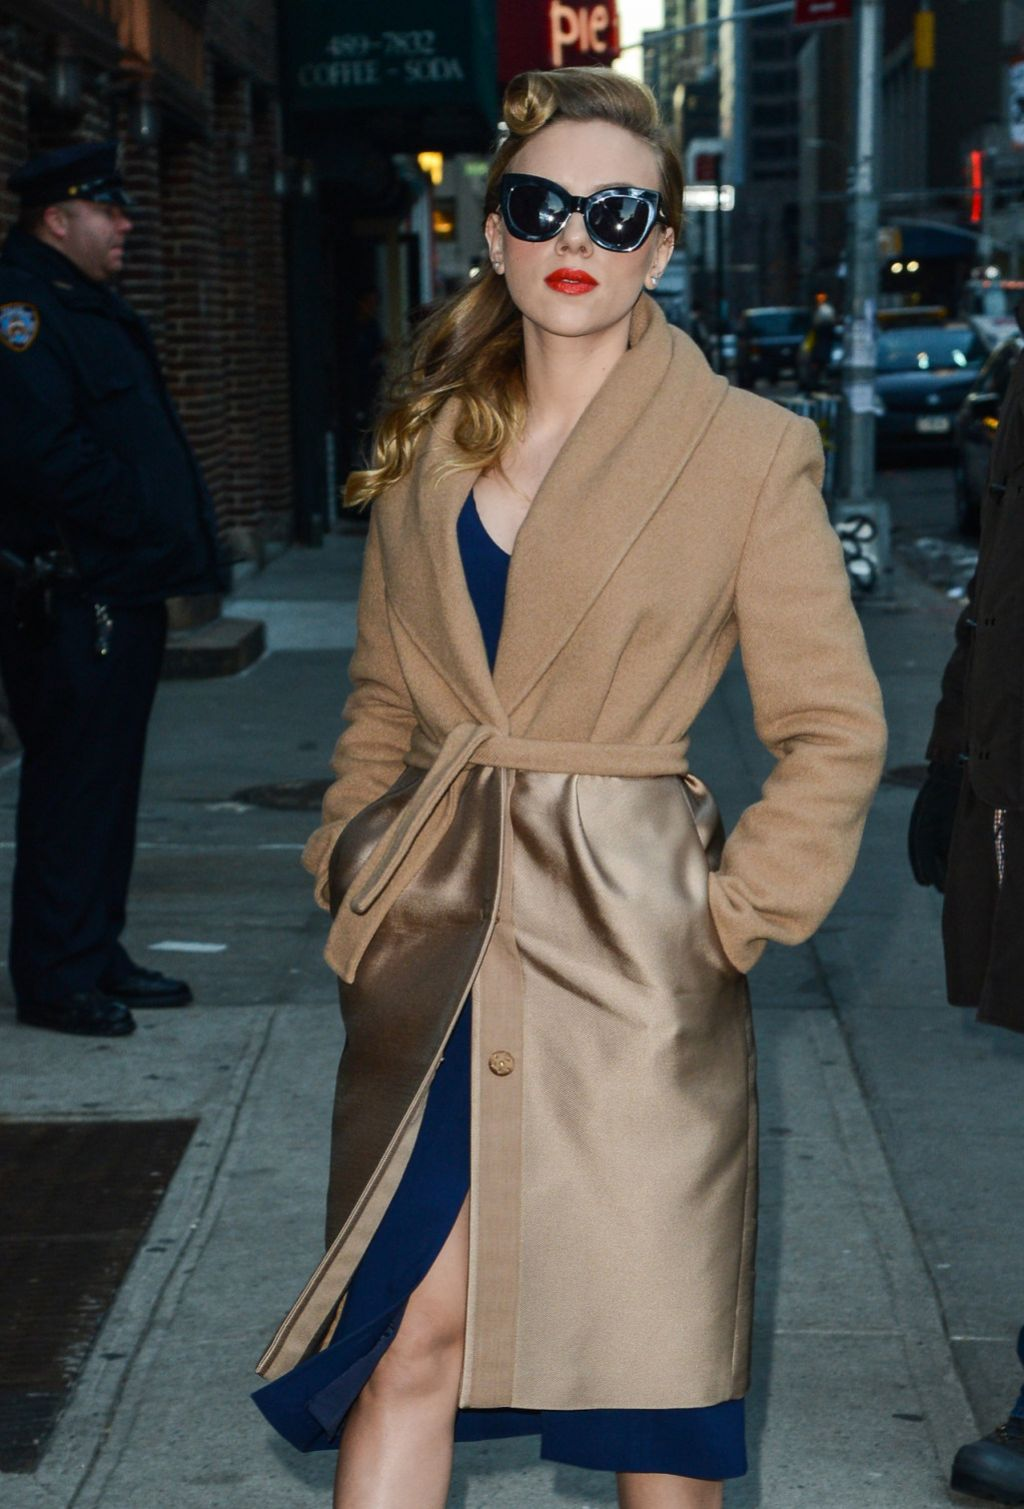 Scarlett Johansson in New York - Late Show With David Letterman - Jan. 2014